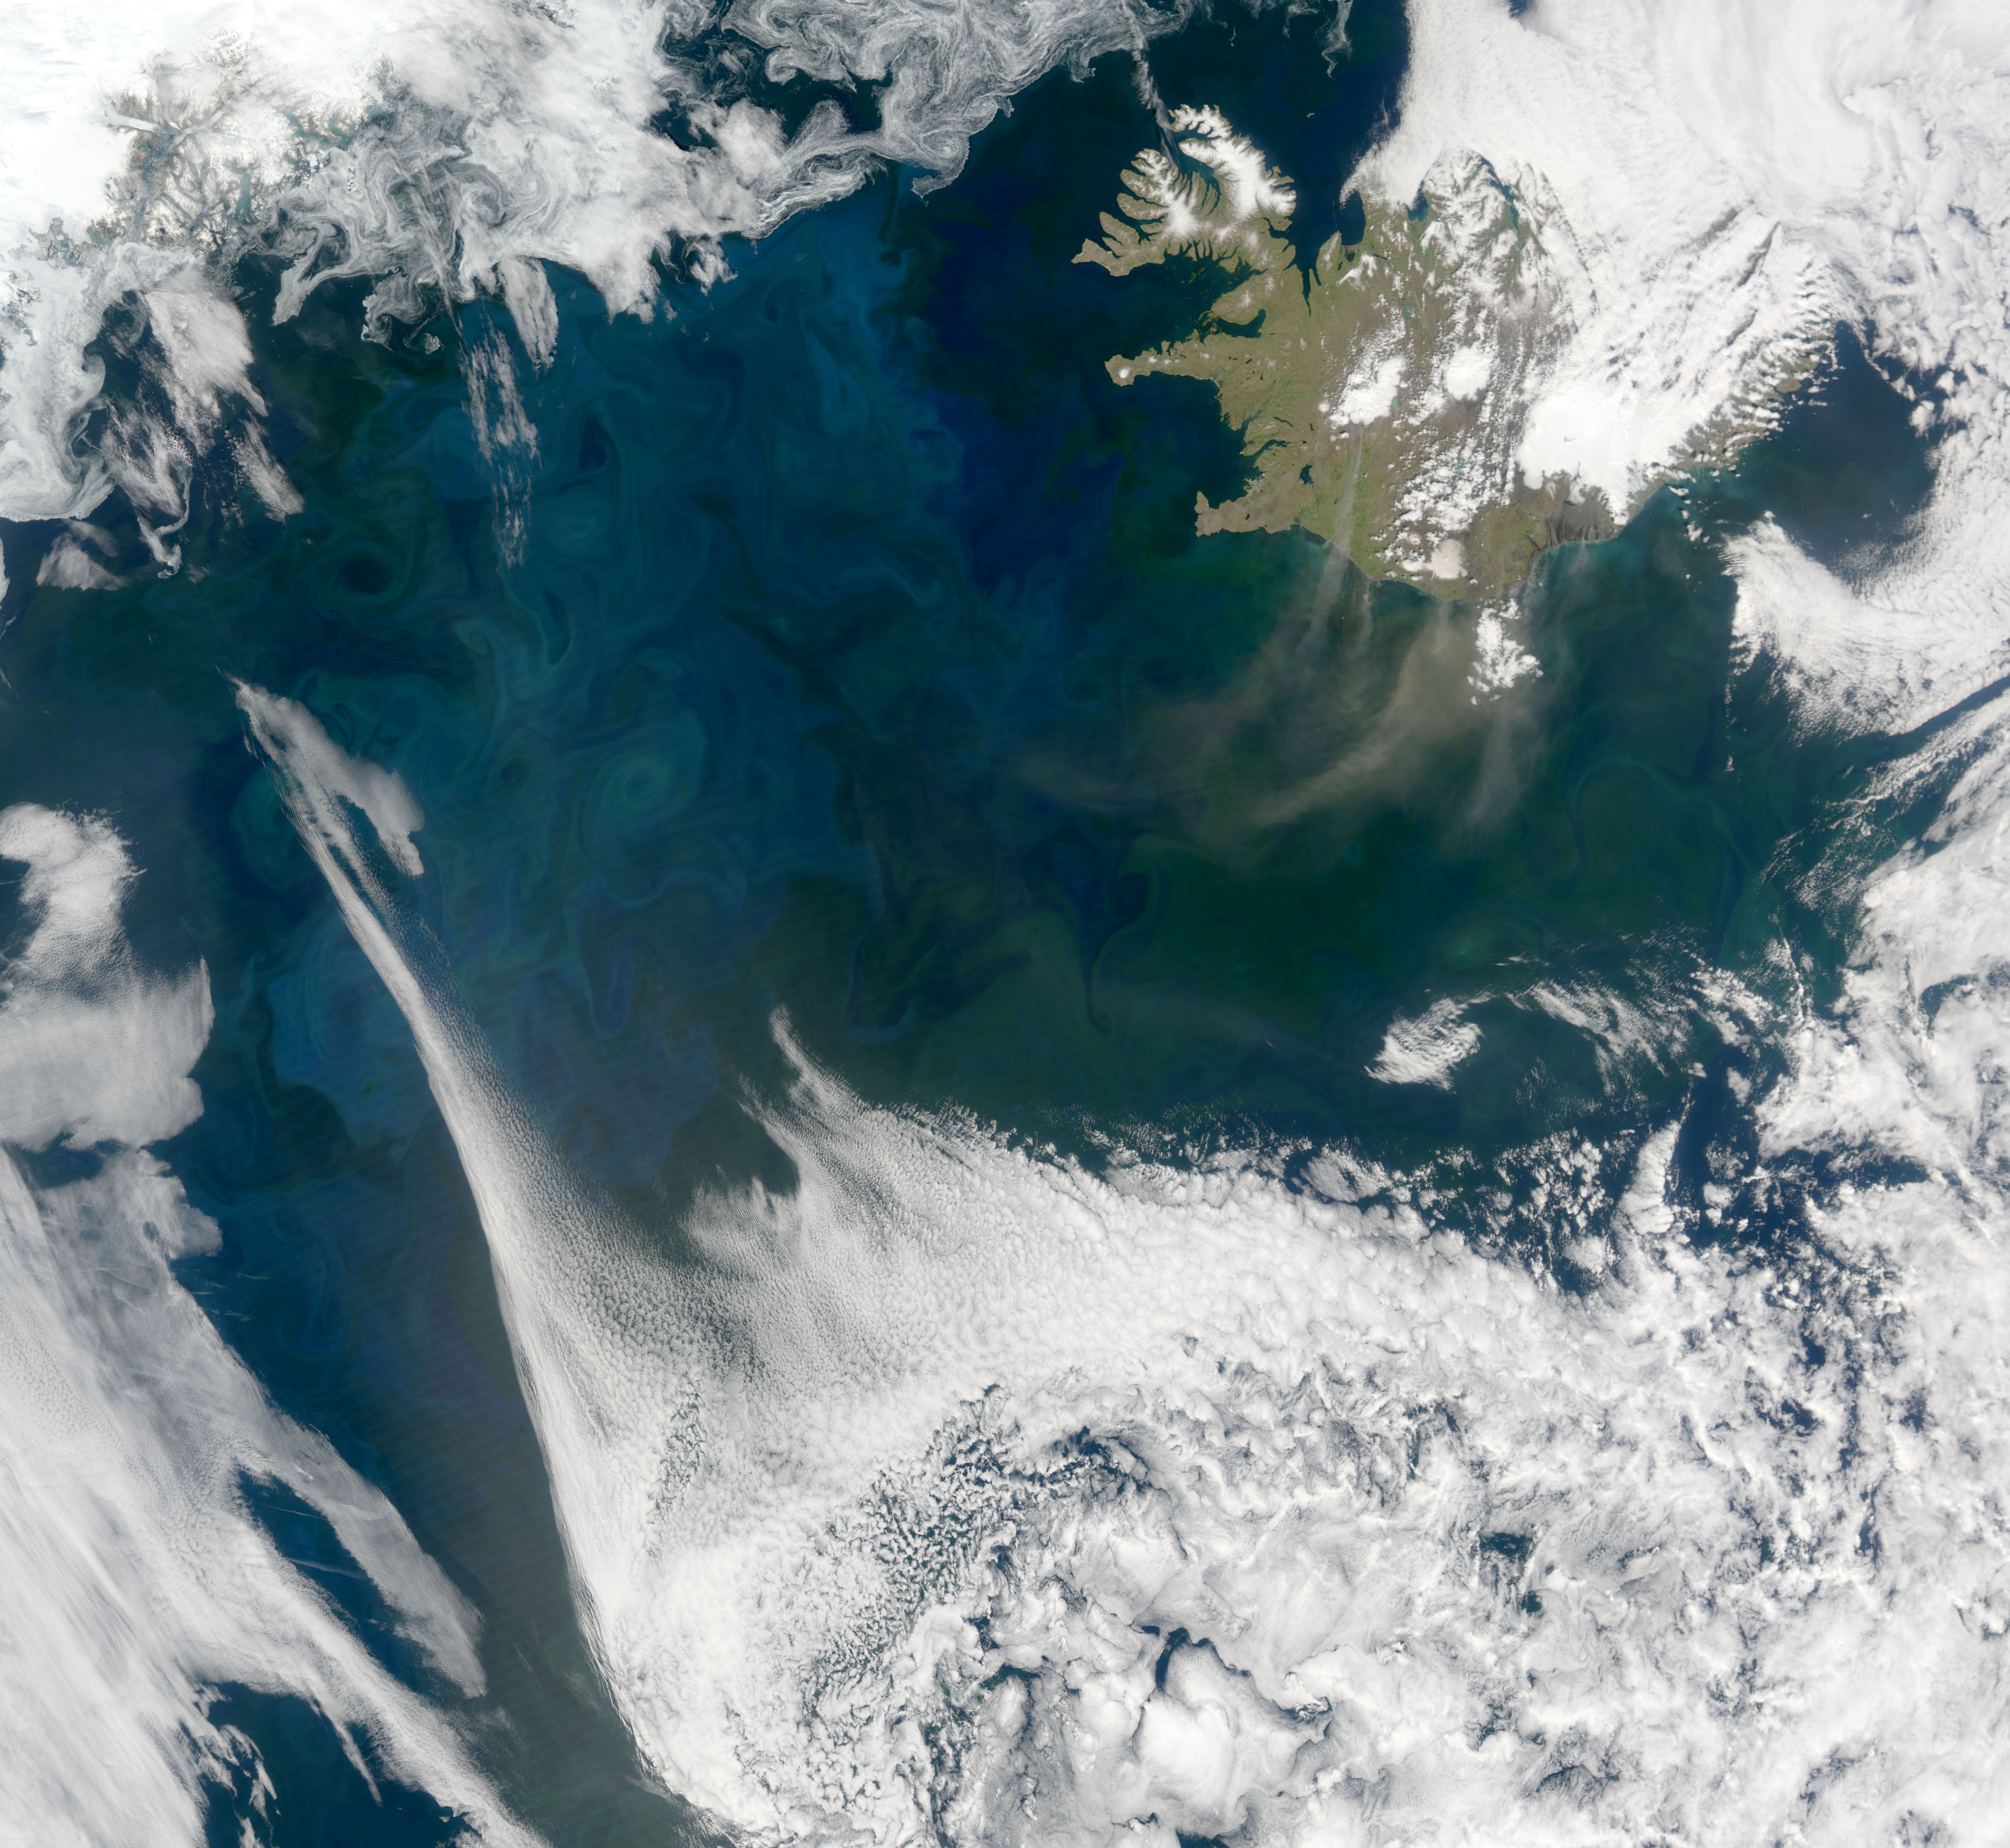 A satellite image shows the different kinds of phytoplankton, some blue and some green, that bloom and get carried around the North Atlantic by swirling eddies.